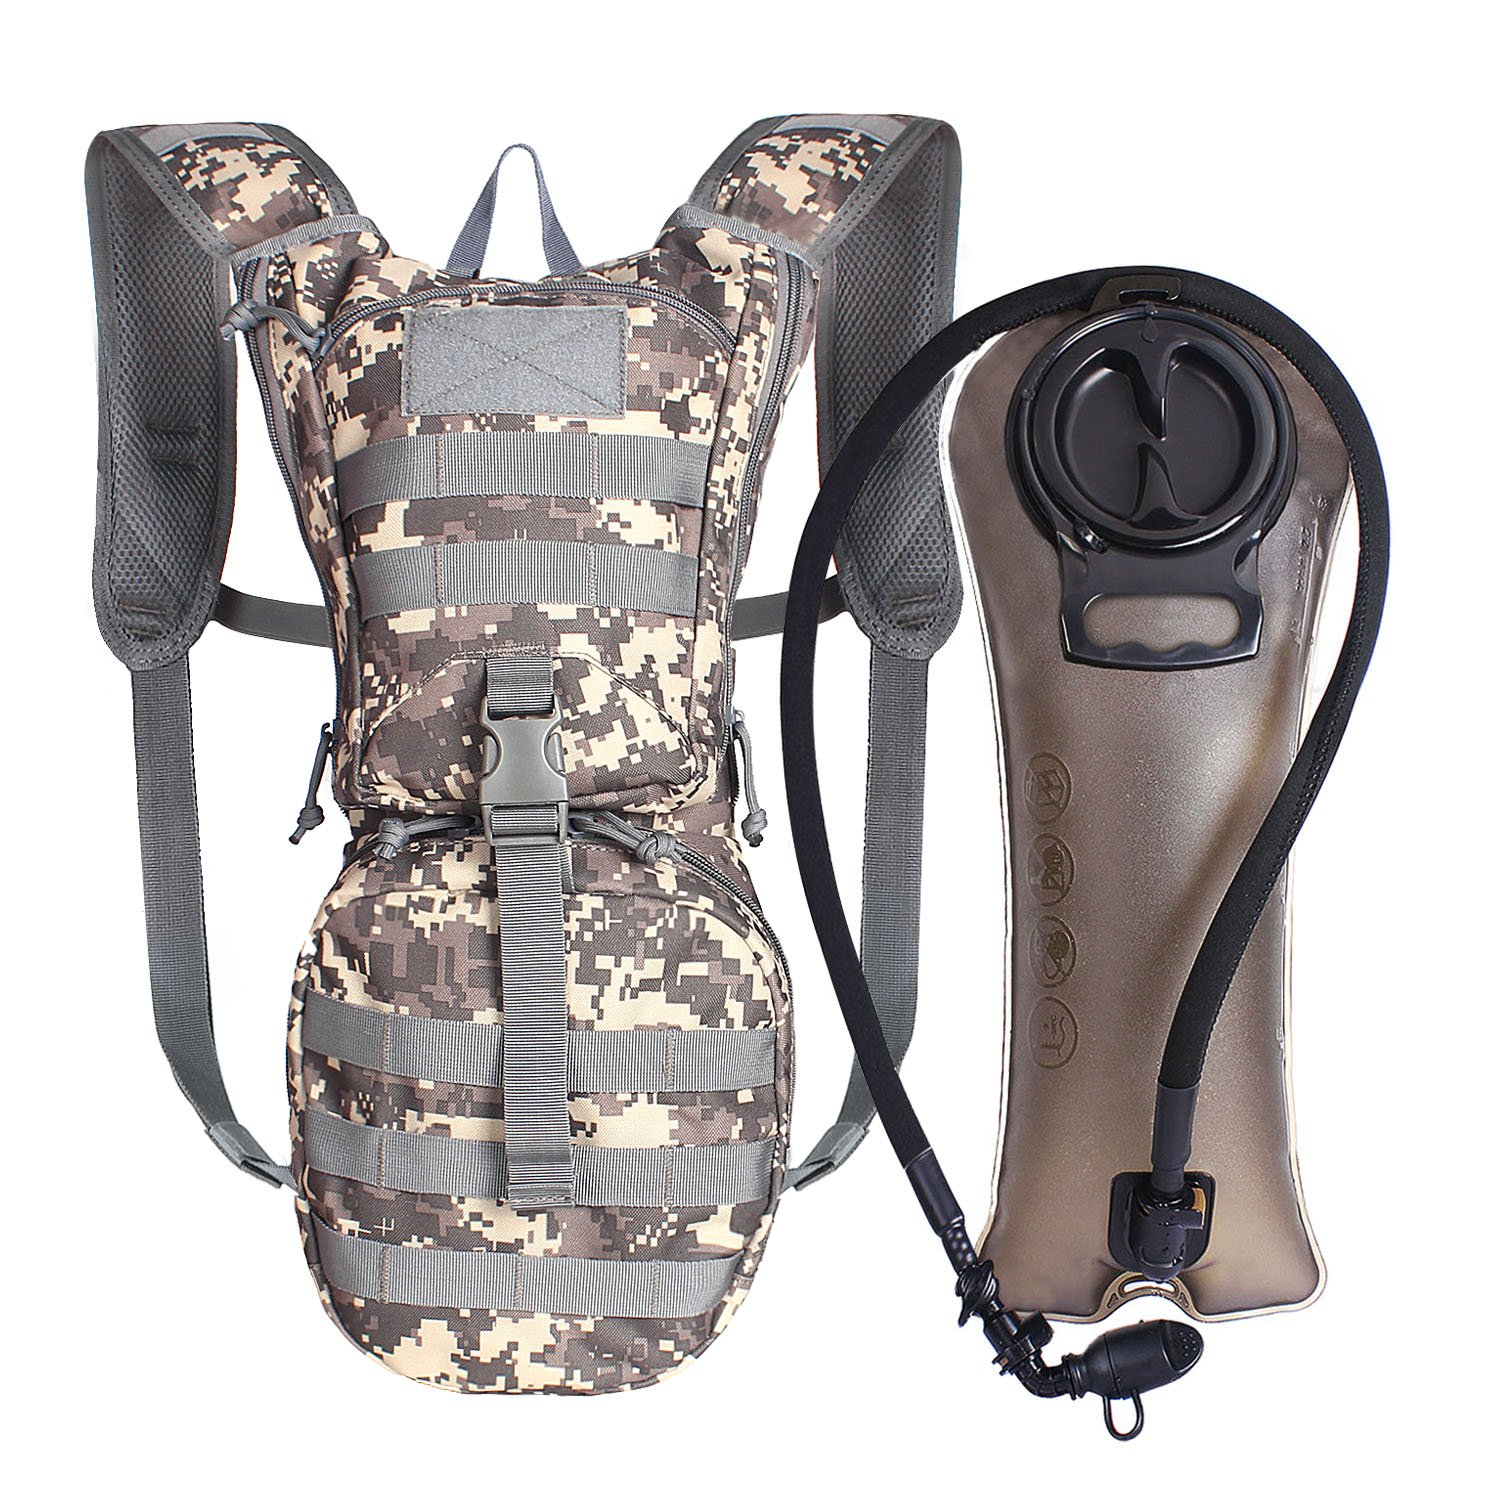 Unigear Tactical Hydration Pack Backpack 900D with 2.5L Bladder for Hiking